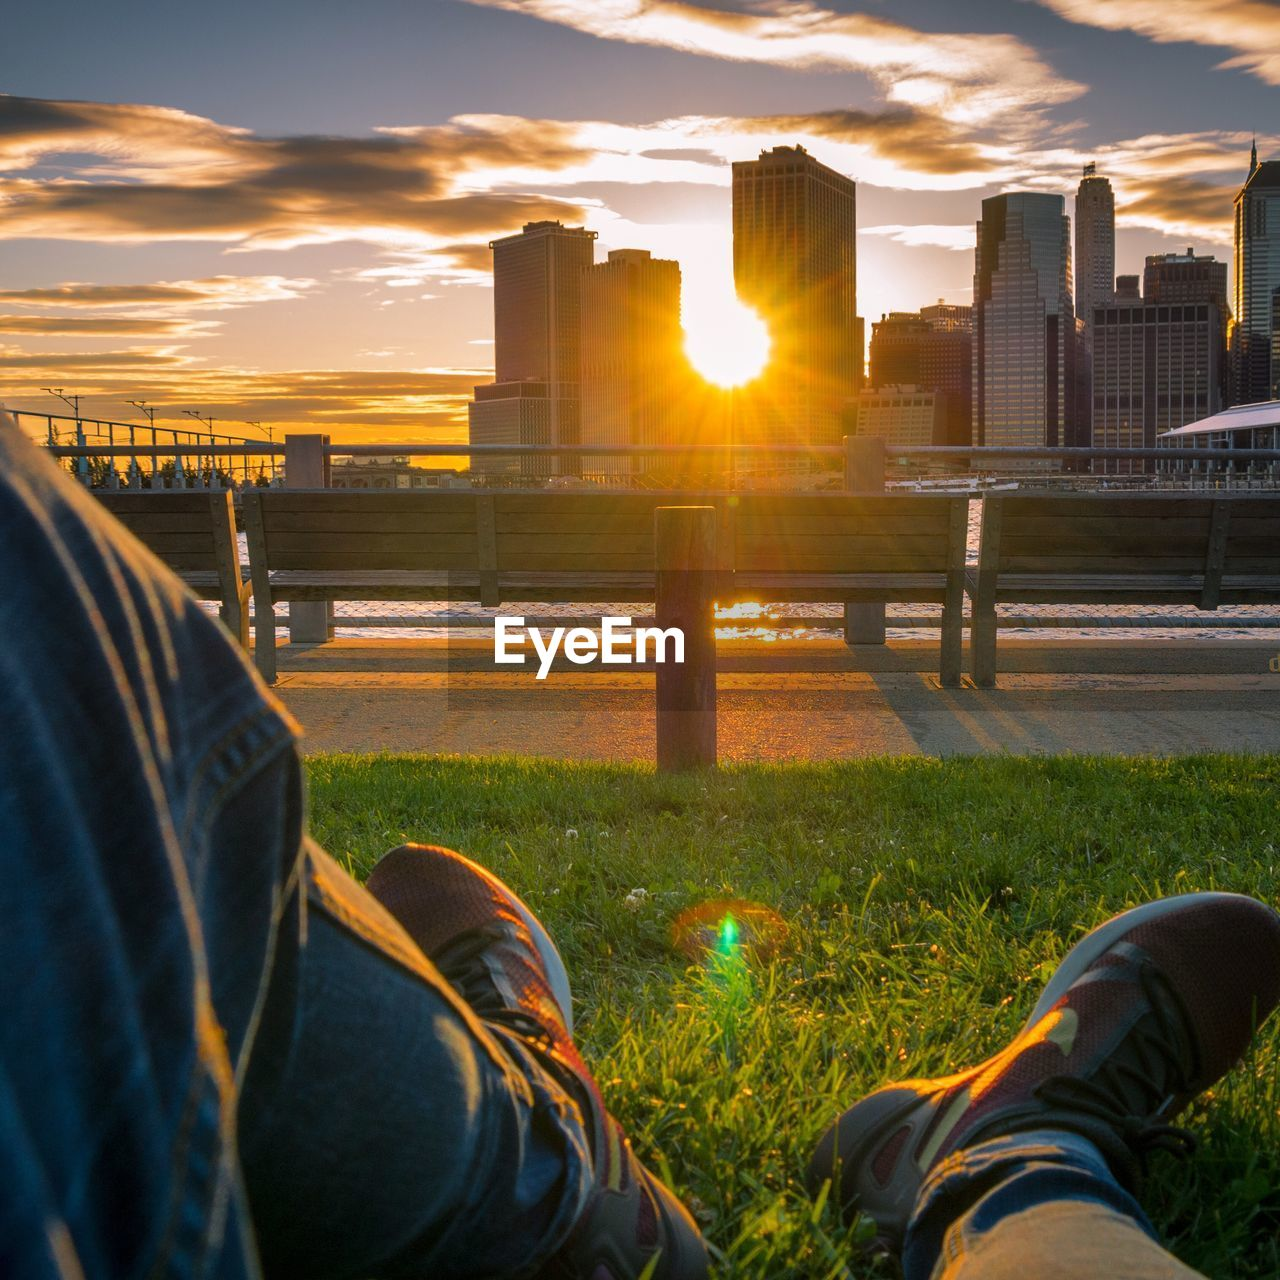 sunset, sky, grass, nature, built structure, orange color, cloud - sky, architecture, sun, real people, sunlight, one person, low section, plant, field, land, sunbeam, human leg, lifestyles, building exterior, body part, lens flare, outdoors, human foot